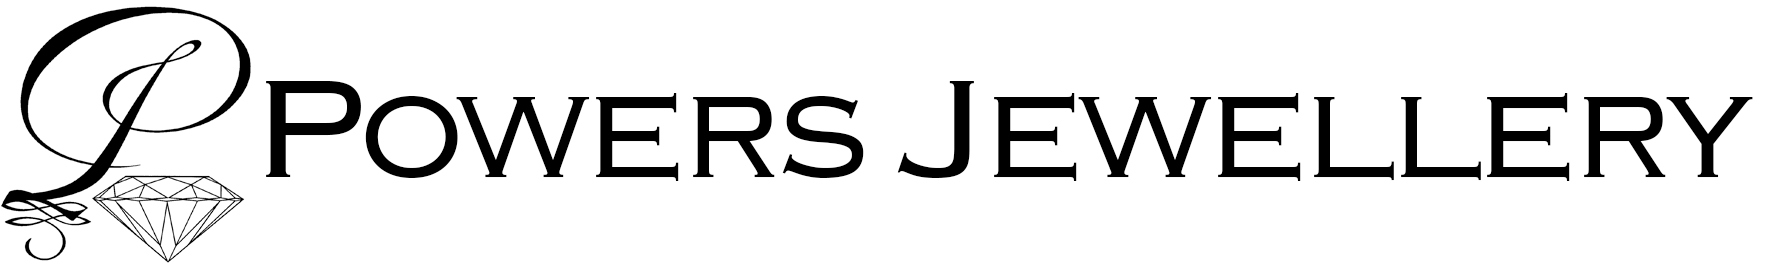 Powers Jewellery Logo